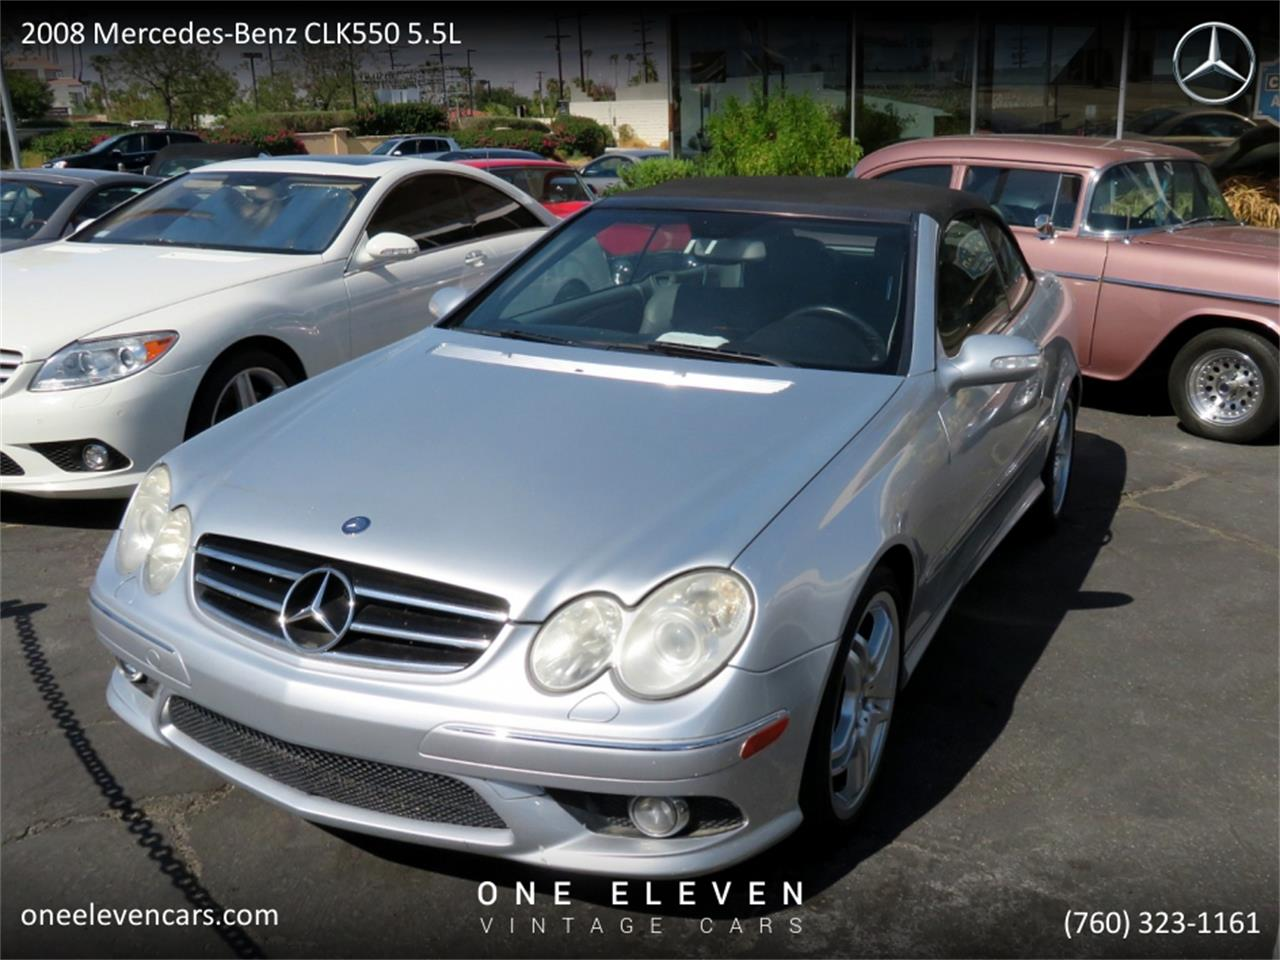 for sale 2008 mercedes-benz clk-class in palm springs, california cars - palm springs, ca at geebo